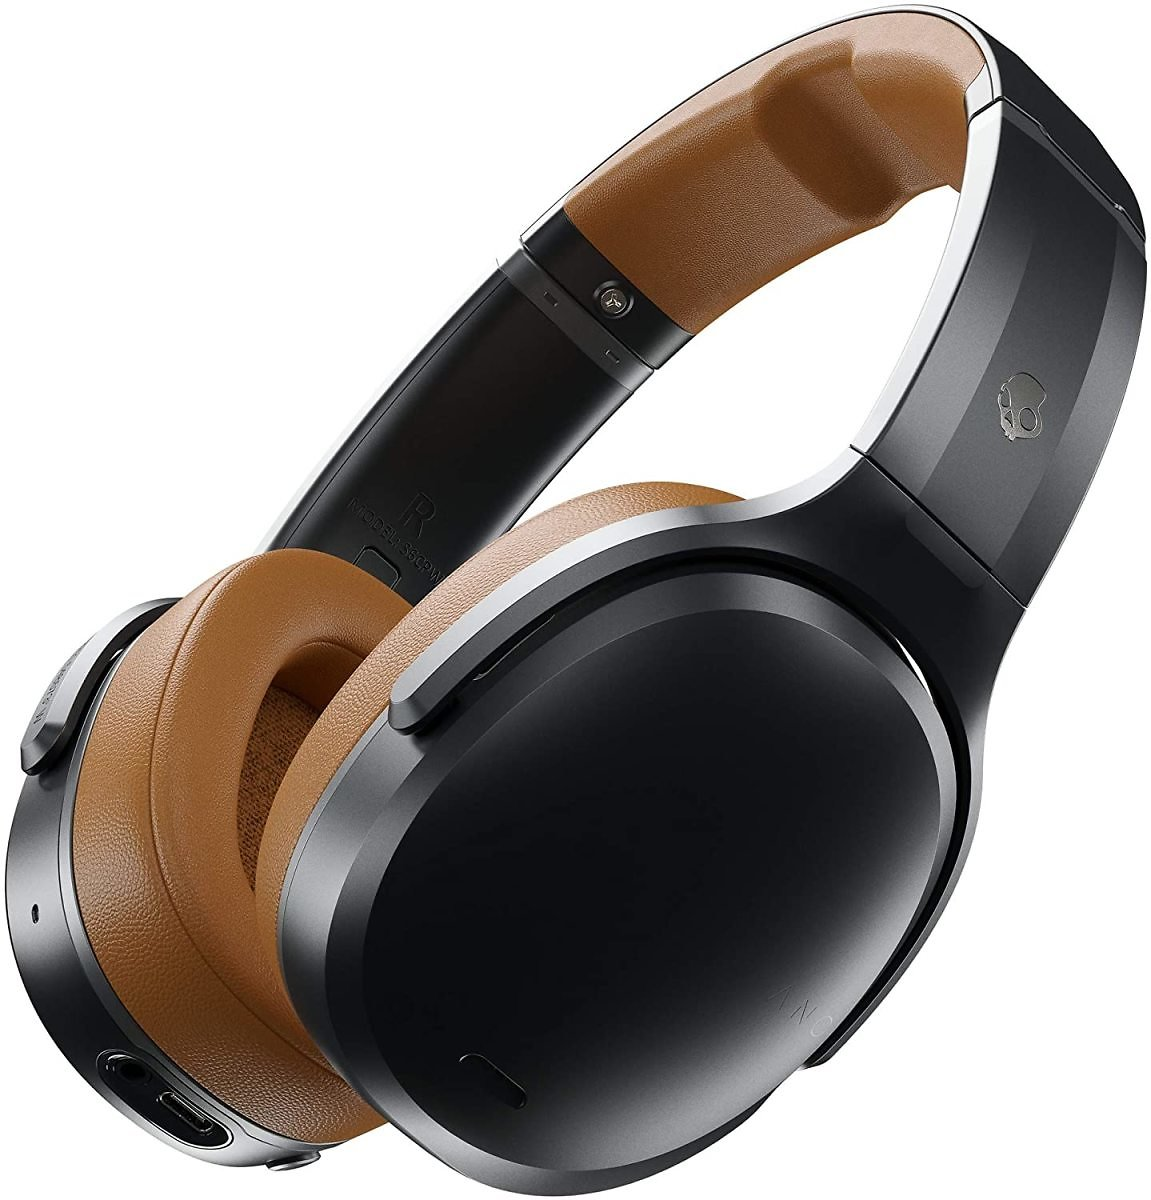 Skullcandy Crusher Anc Personalized Noise Canceling Wireless Headphone (3 Colors)